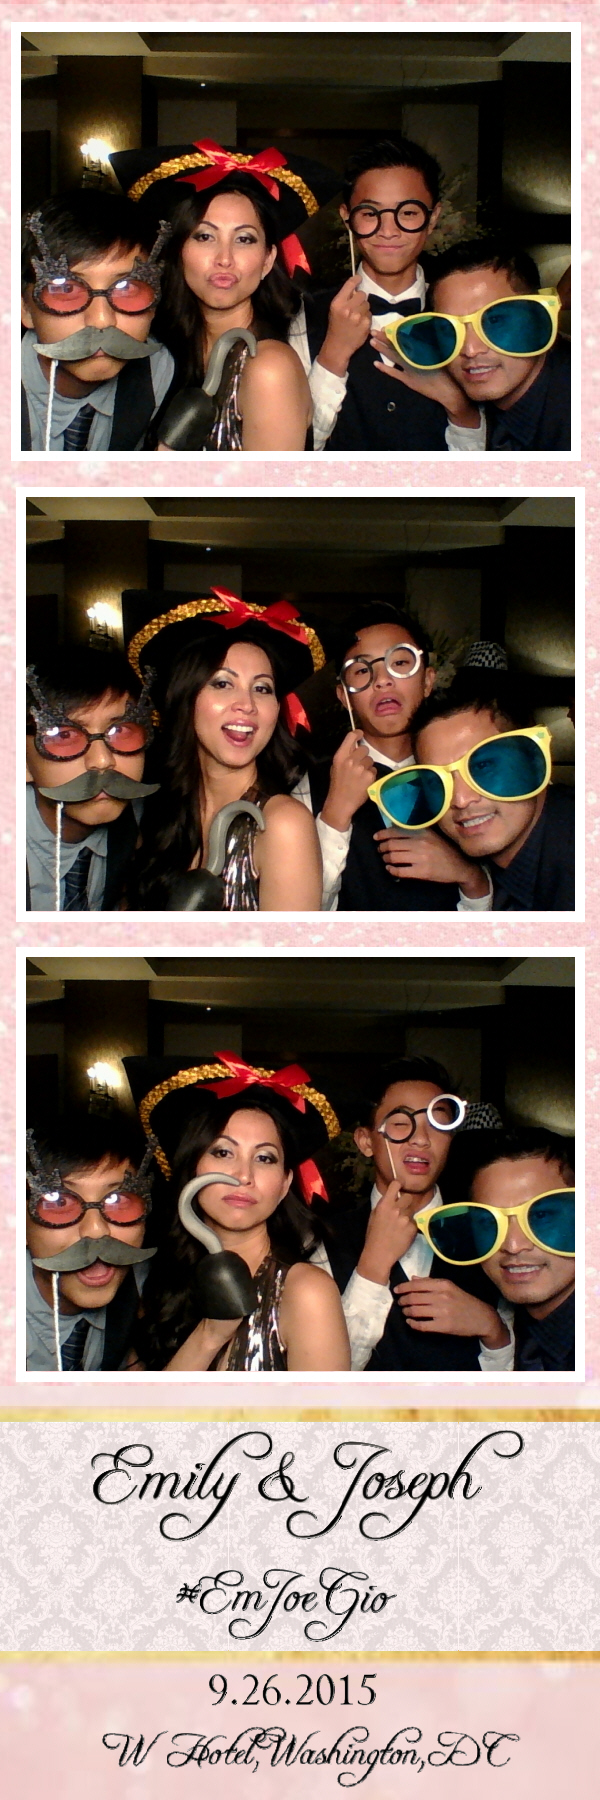 Guest House Events Photo Booth E&J (10).jpg